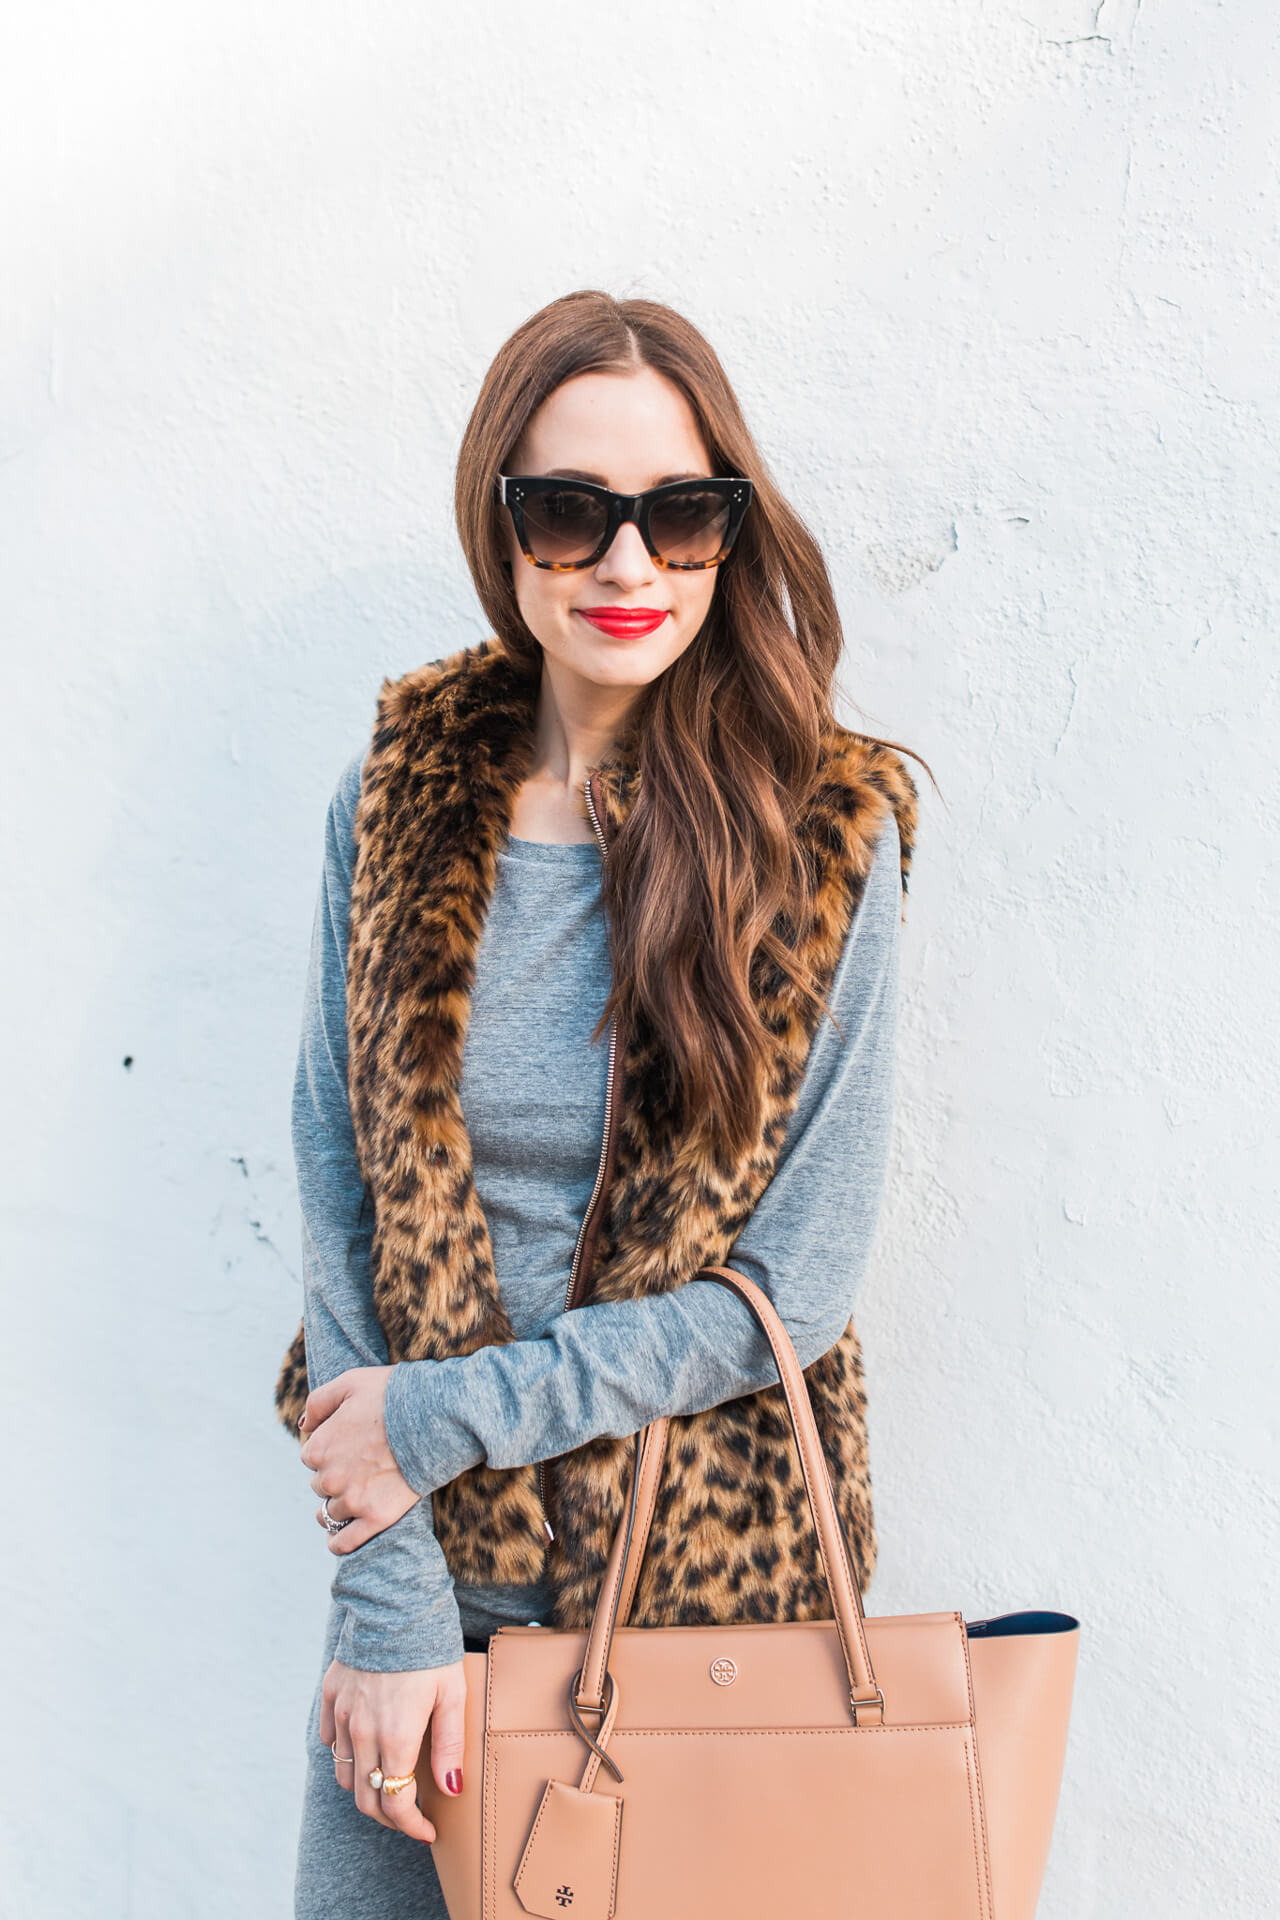 Keeping it classy with this faux fur leopard print vest